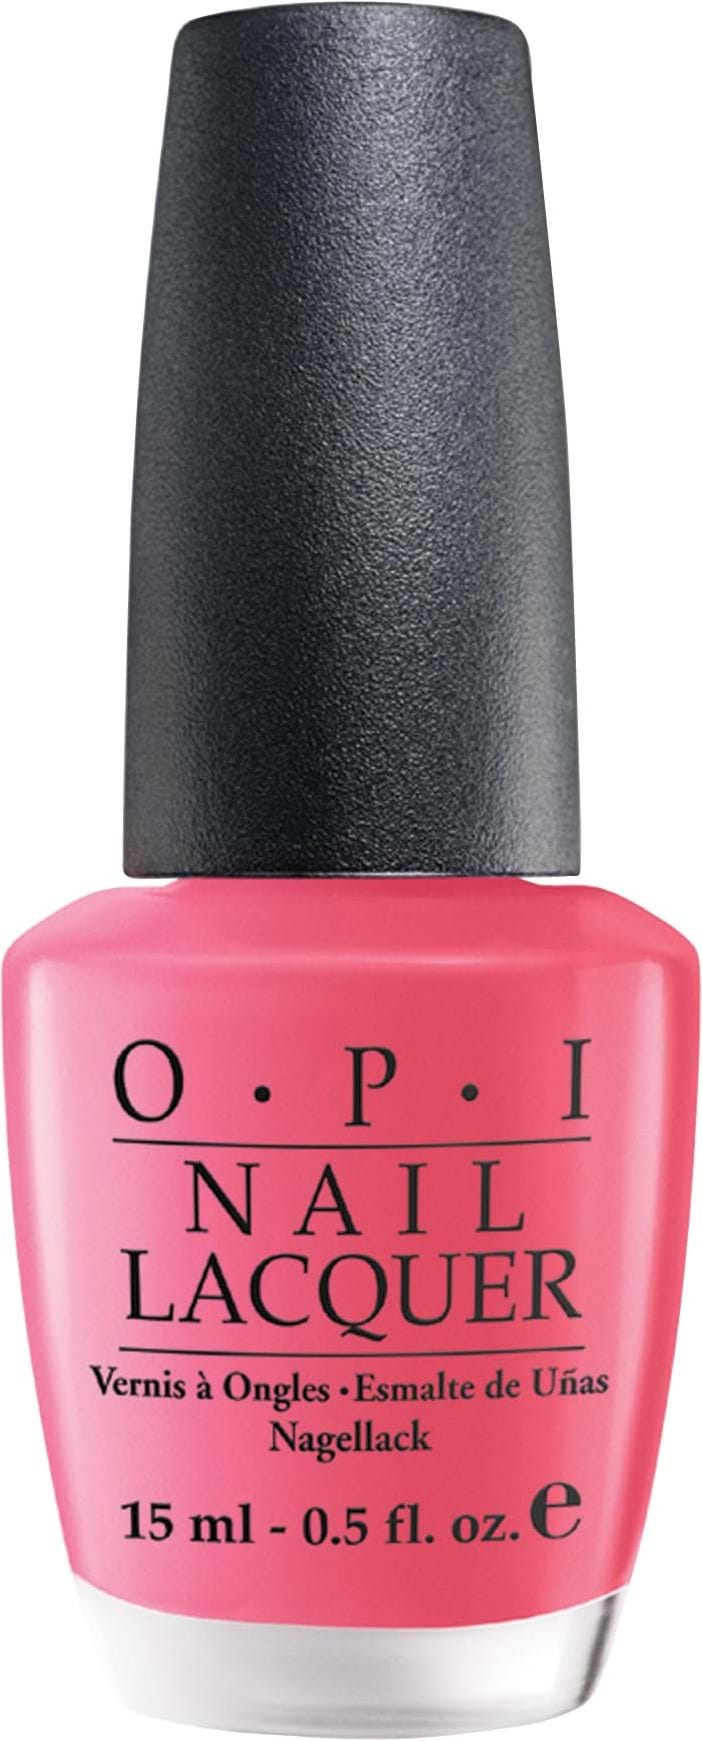 OPI Classic Collection Nail Lacquer N° NL M23 Strawberry Margarita 15 ml